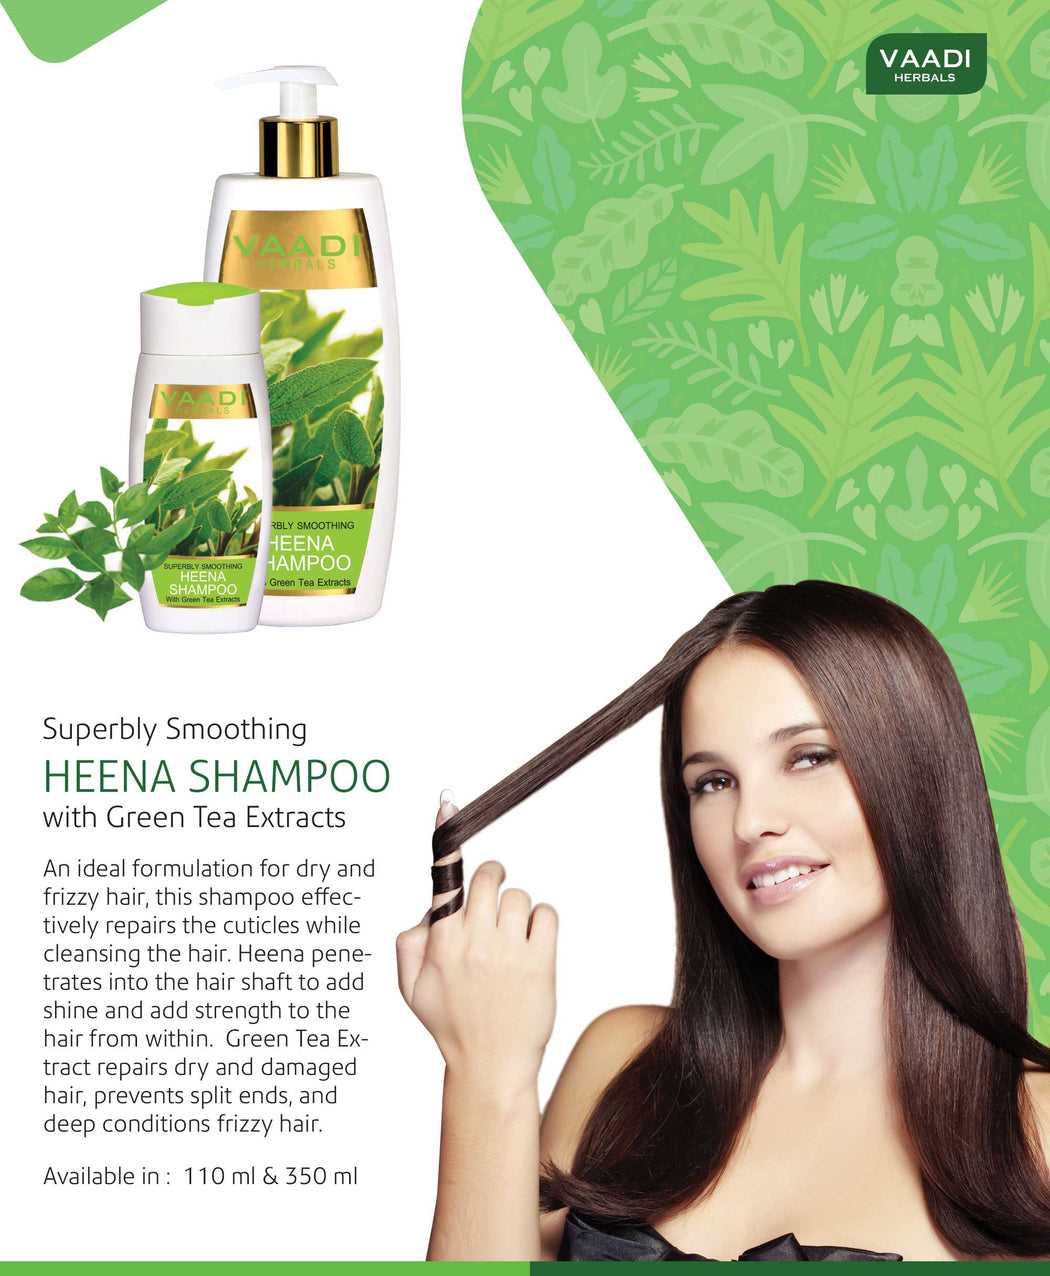 Superbly Smoothing Organic Heena Shampoo with Green Tea Extract (3 x 110 ml/4 fl oz)